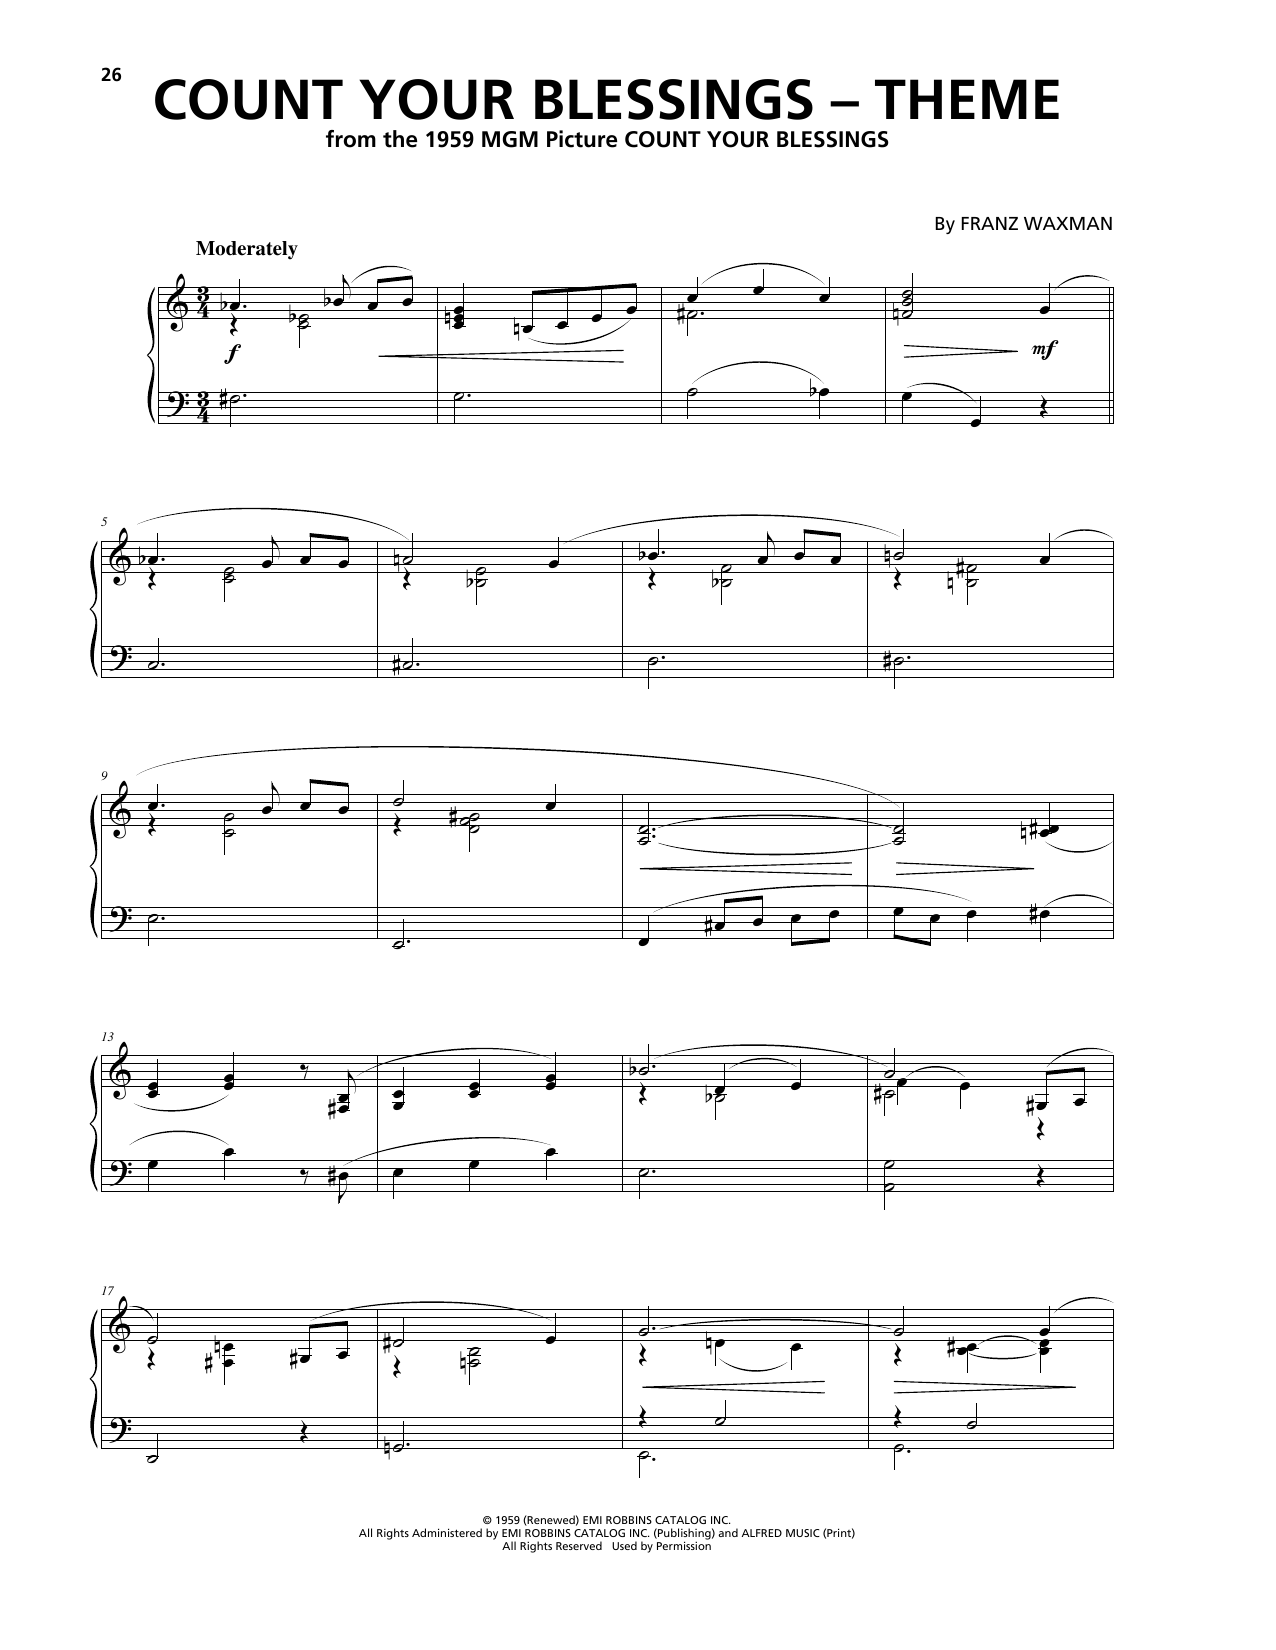 Franz Waxman Count Your Blessings (Theme) sheet music notes and chords. Download Printable PDF.